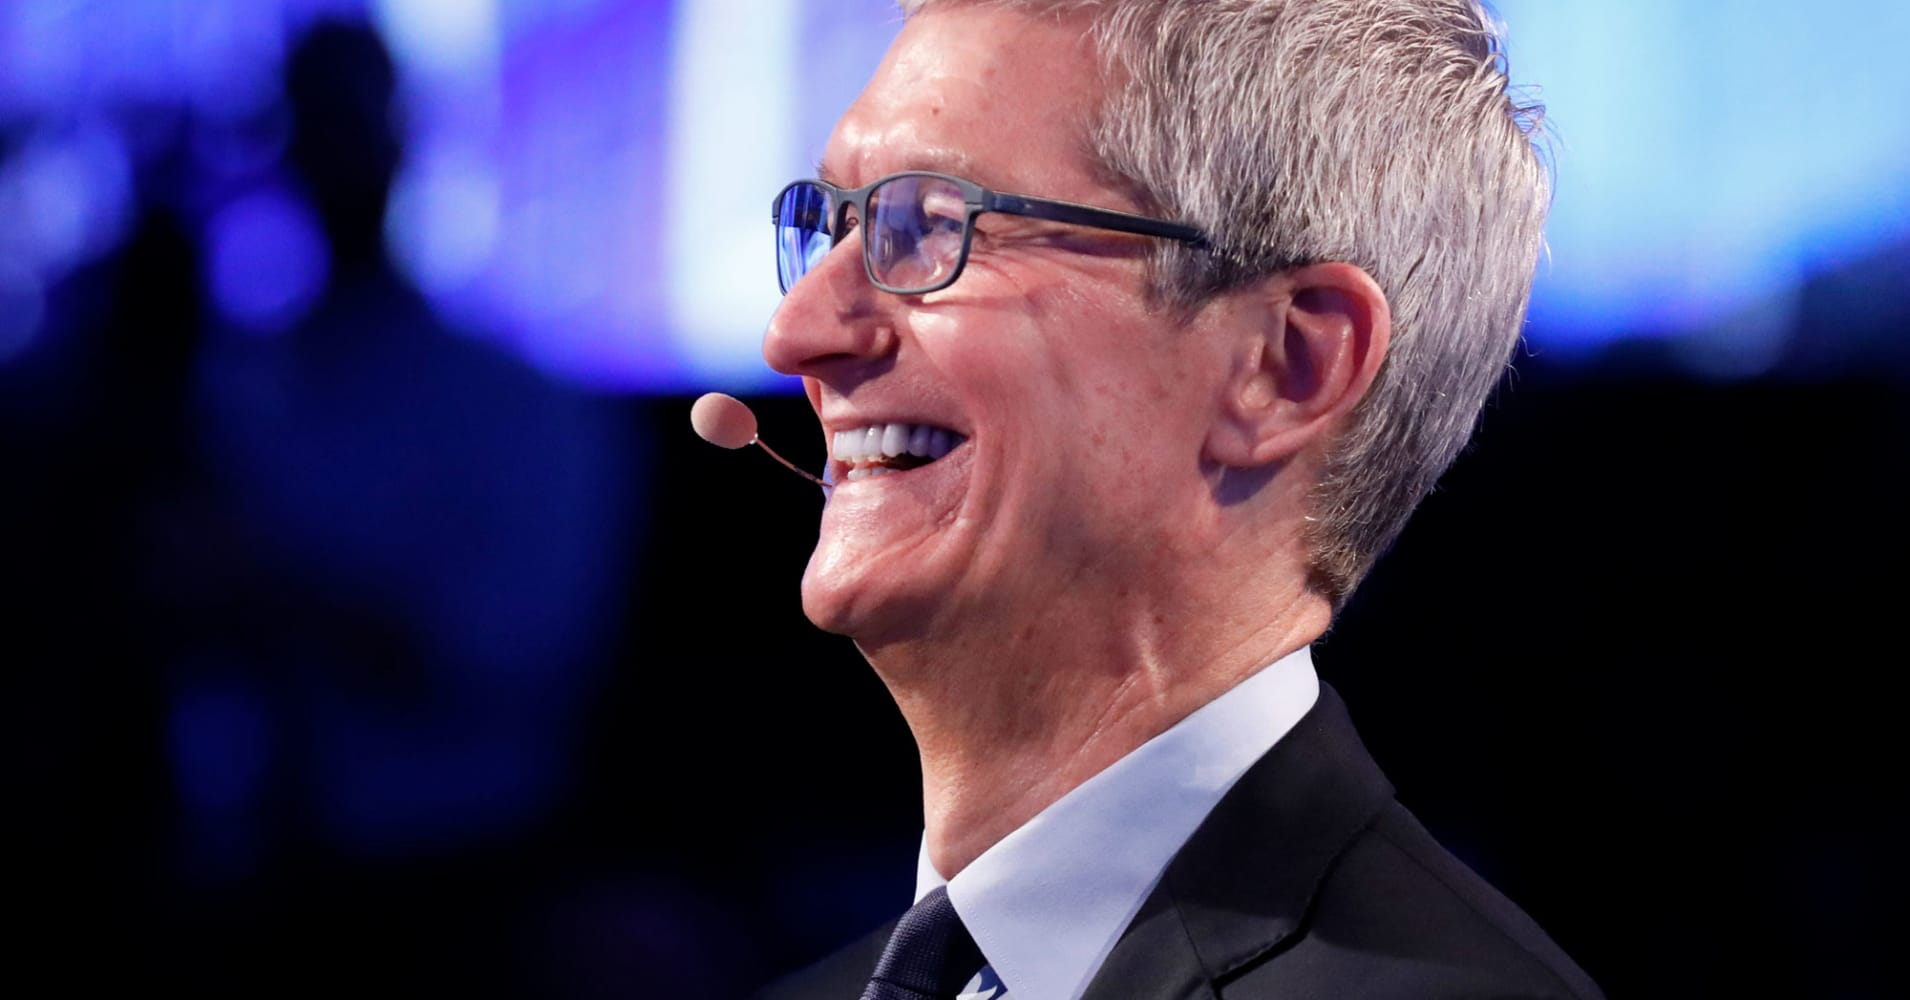 Apple is Probably the Best Tech Bet Heading into Earnings, Says Venture Capitalist Gene Munster